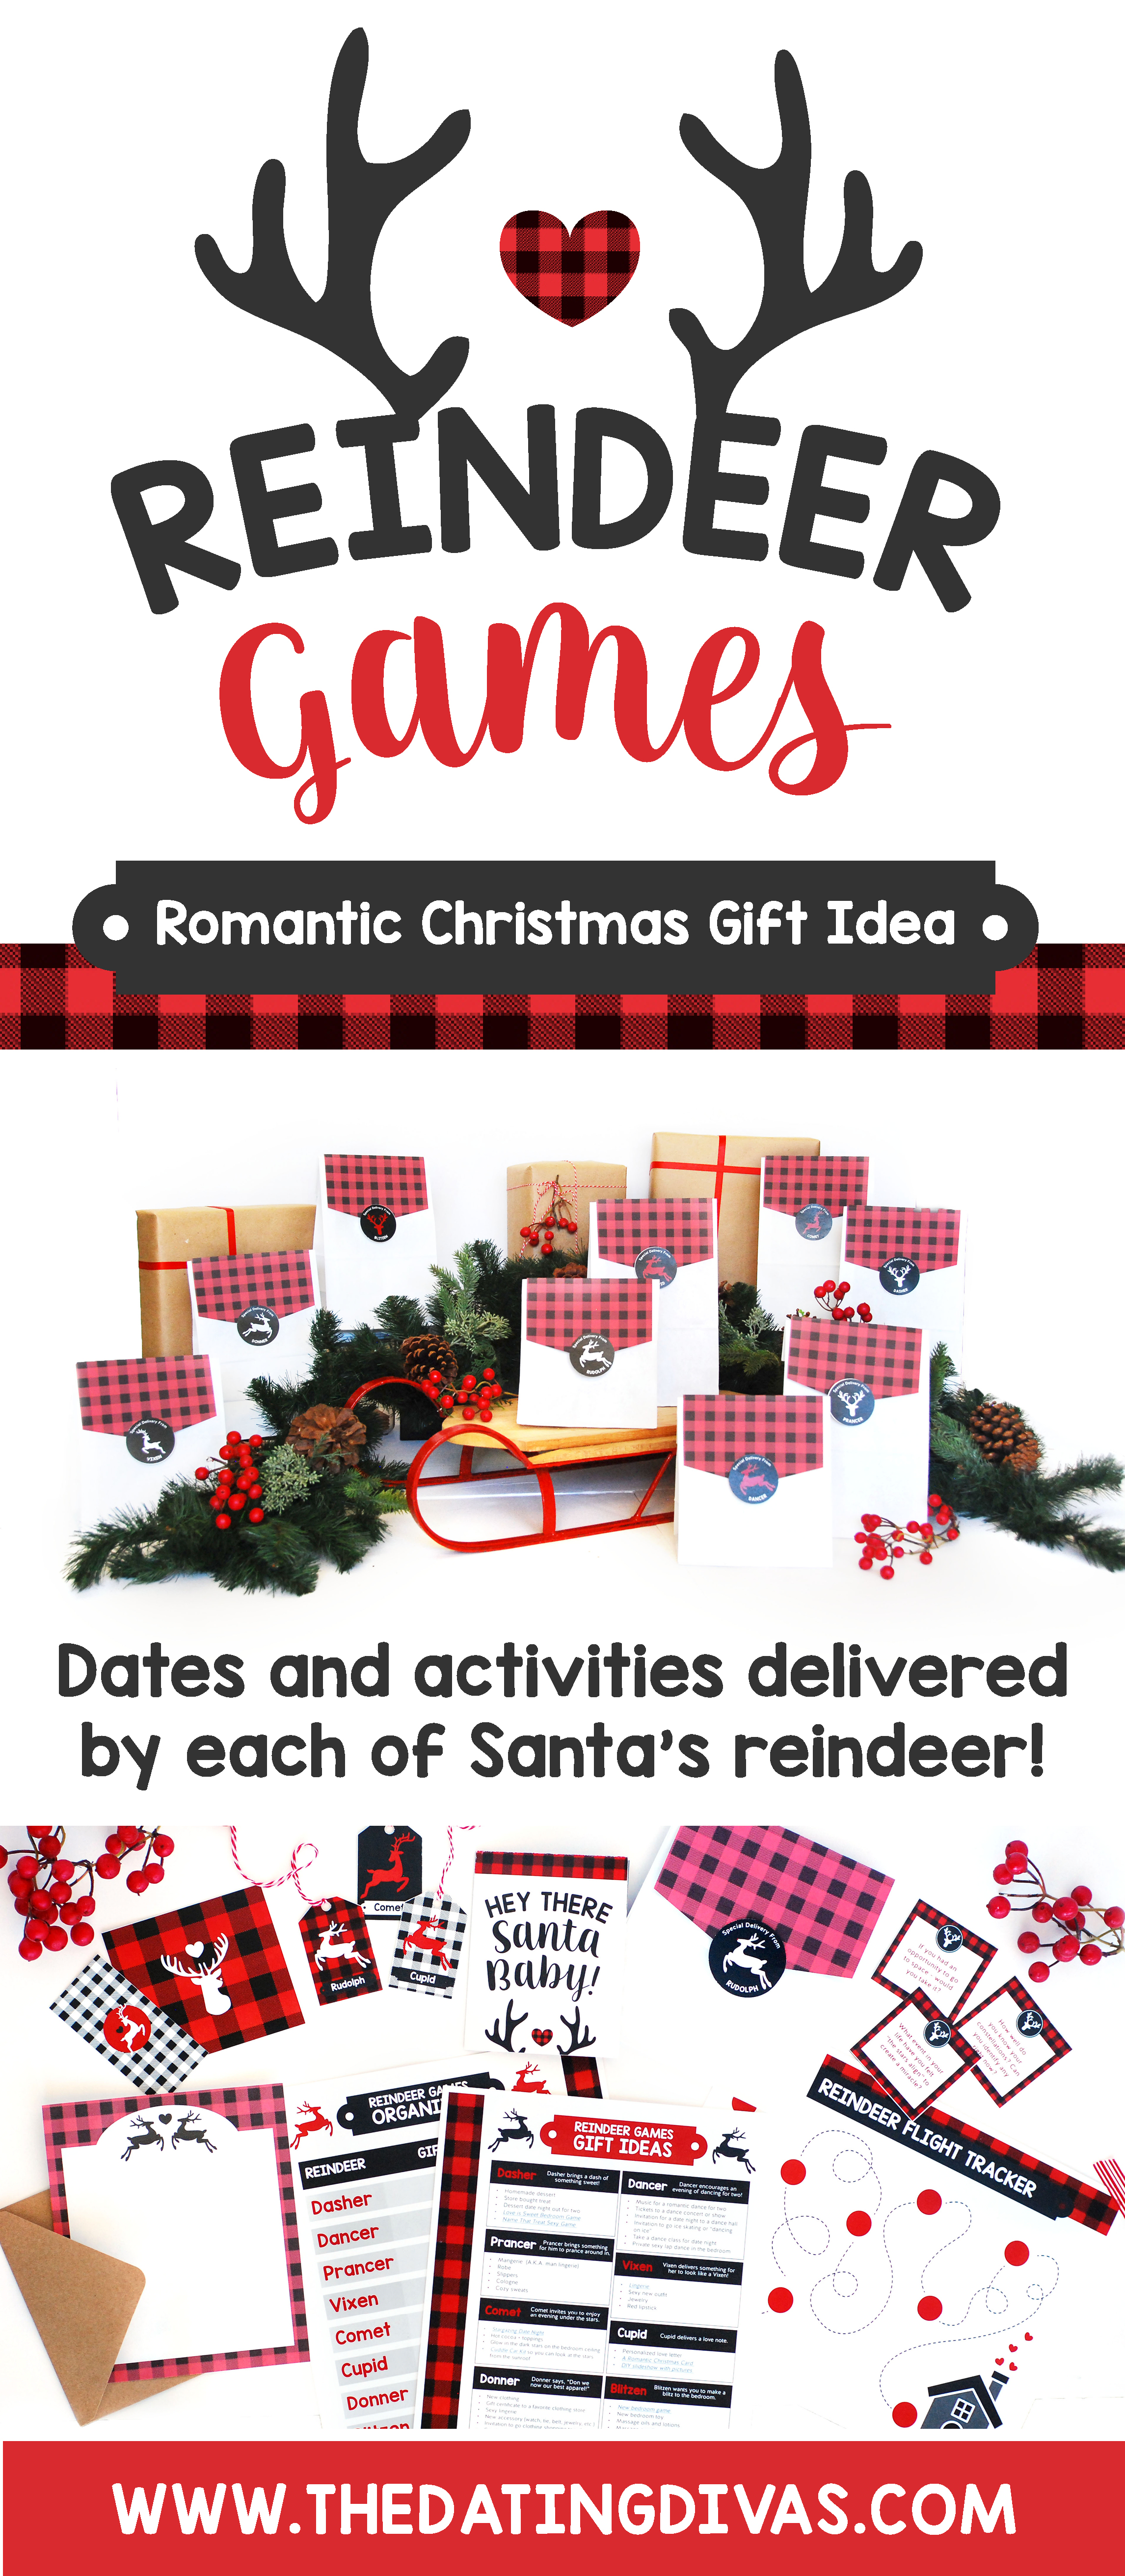 Reindeer Games Christmas Gifts Ideas: Finding romantic Christmas gift ideas for your spouse can be tricky, but we have everything you need for a memorable and magical Christmas holiday with these Reindeer Games! Each of Santa's nine reindeer bring special deliveries in the form of customized Christmas date nights and Christmas gifts for your sweetheart! #ChristmasGifts #ChristmasDate #ReindeerGames #Dating Divas